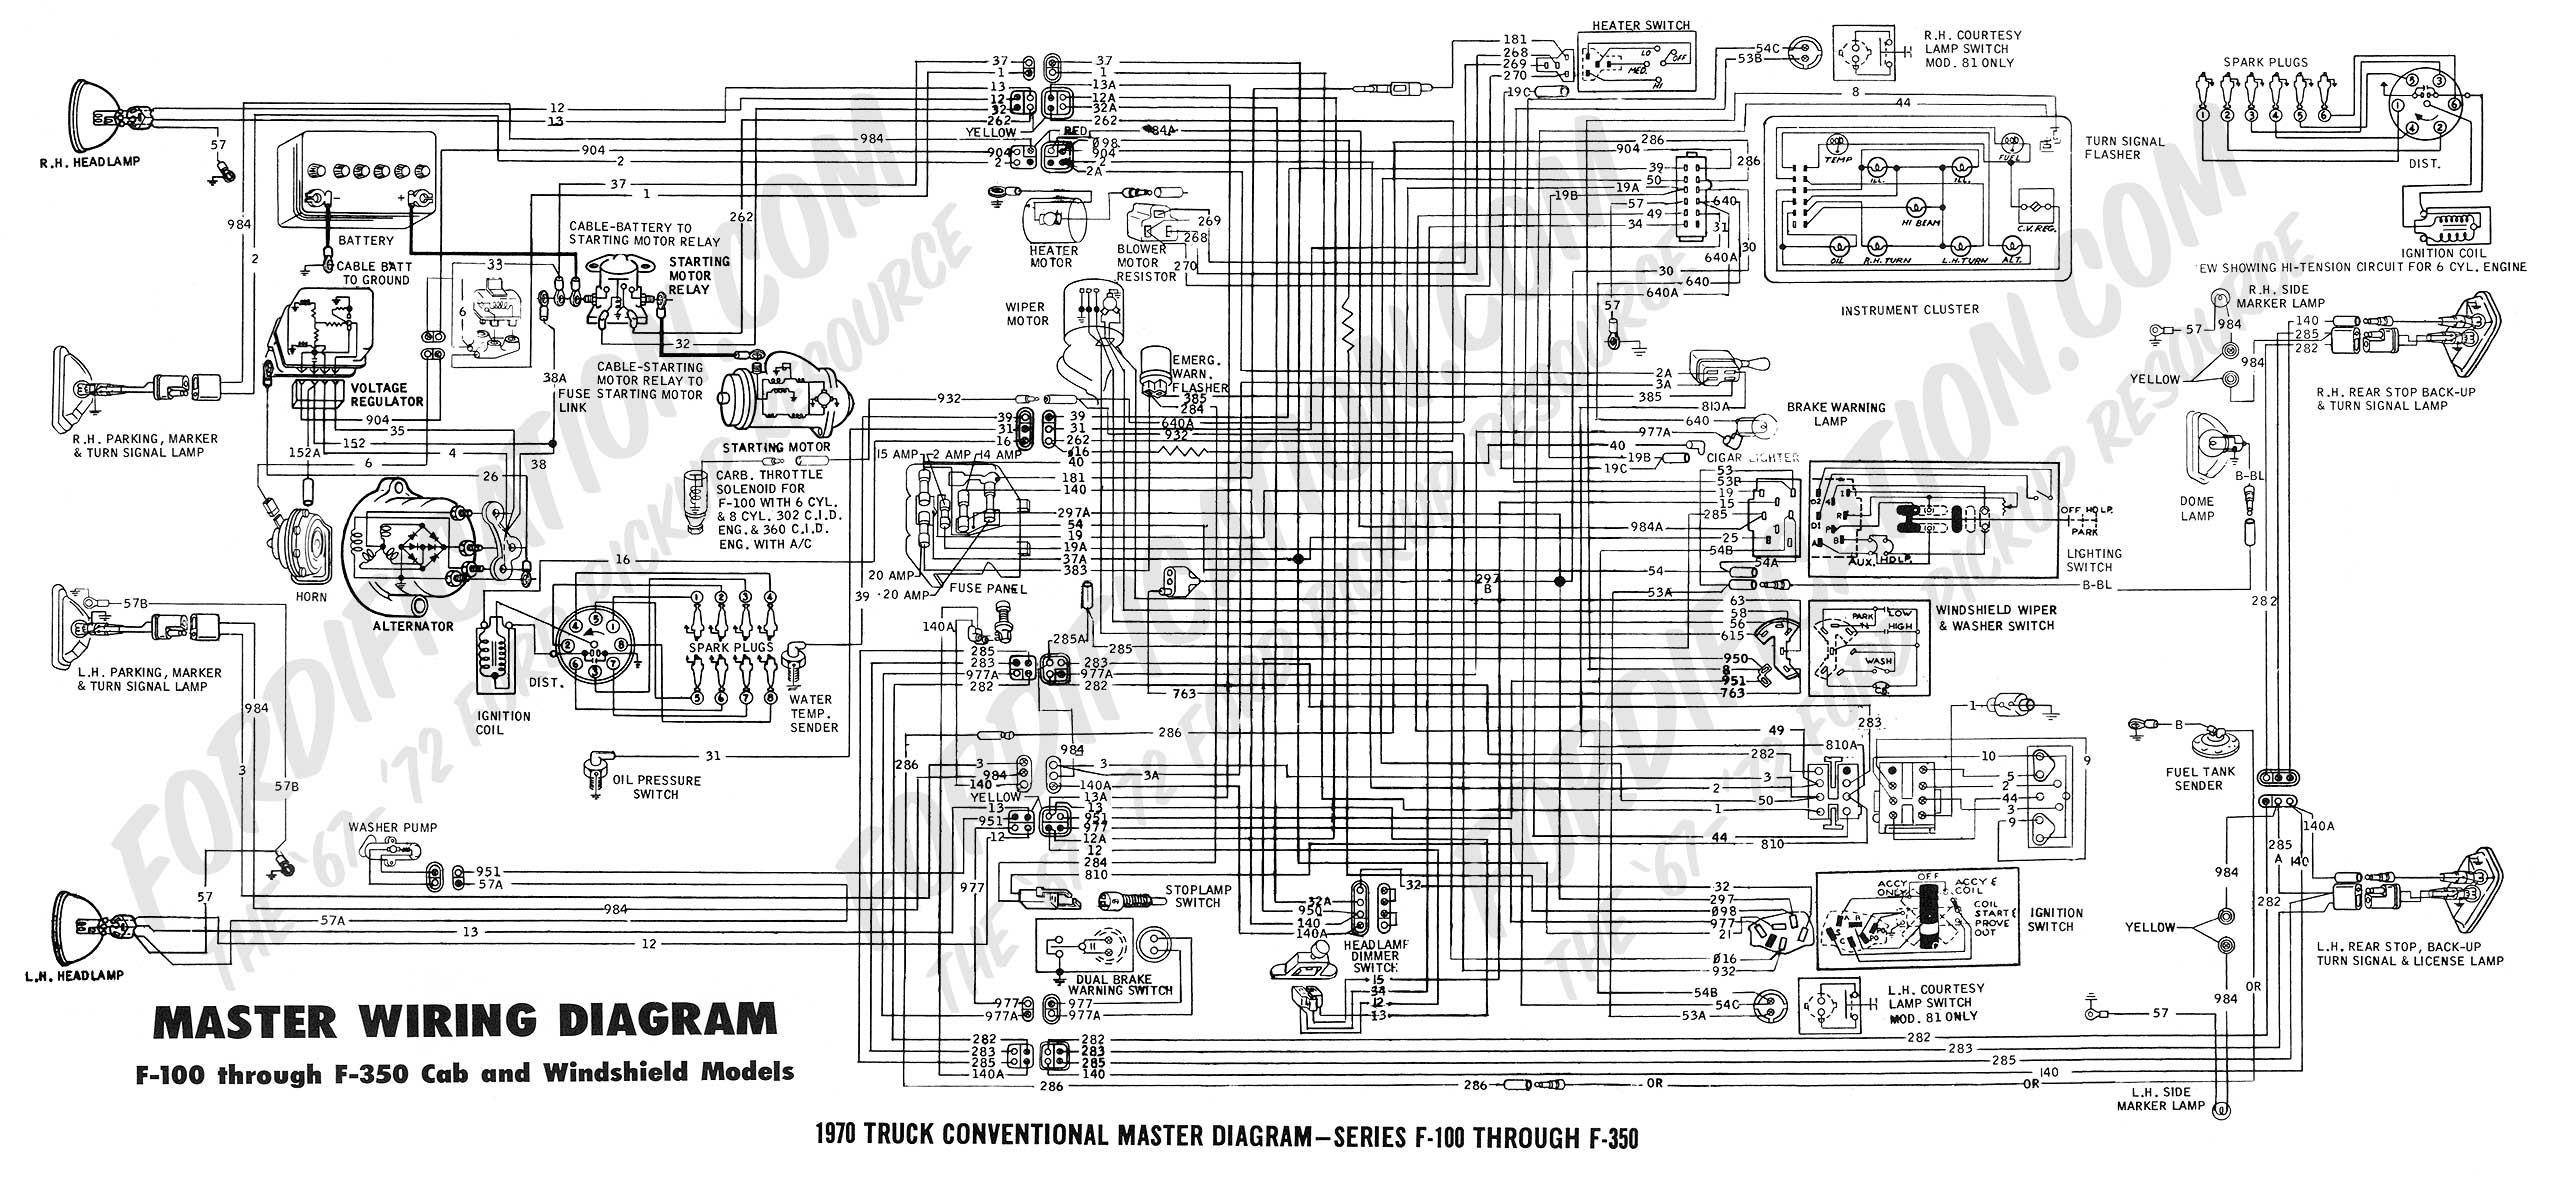 wiring diagram 70_master camper wiring diagram manual slide in camper wiring diagram truck camper wiring diagram at alyssarenee.co